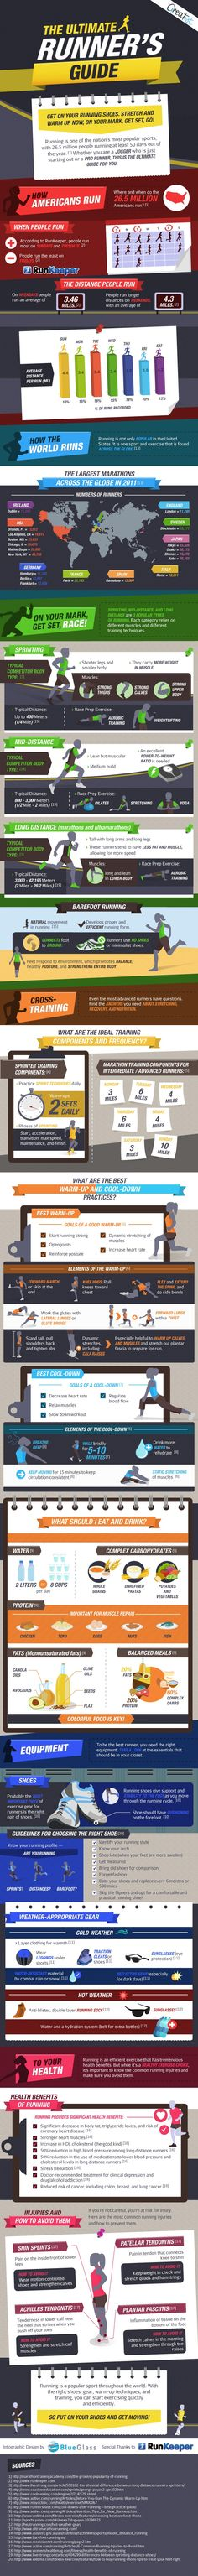 Running infographic via Greatist